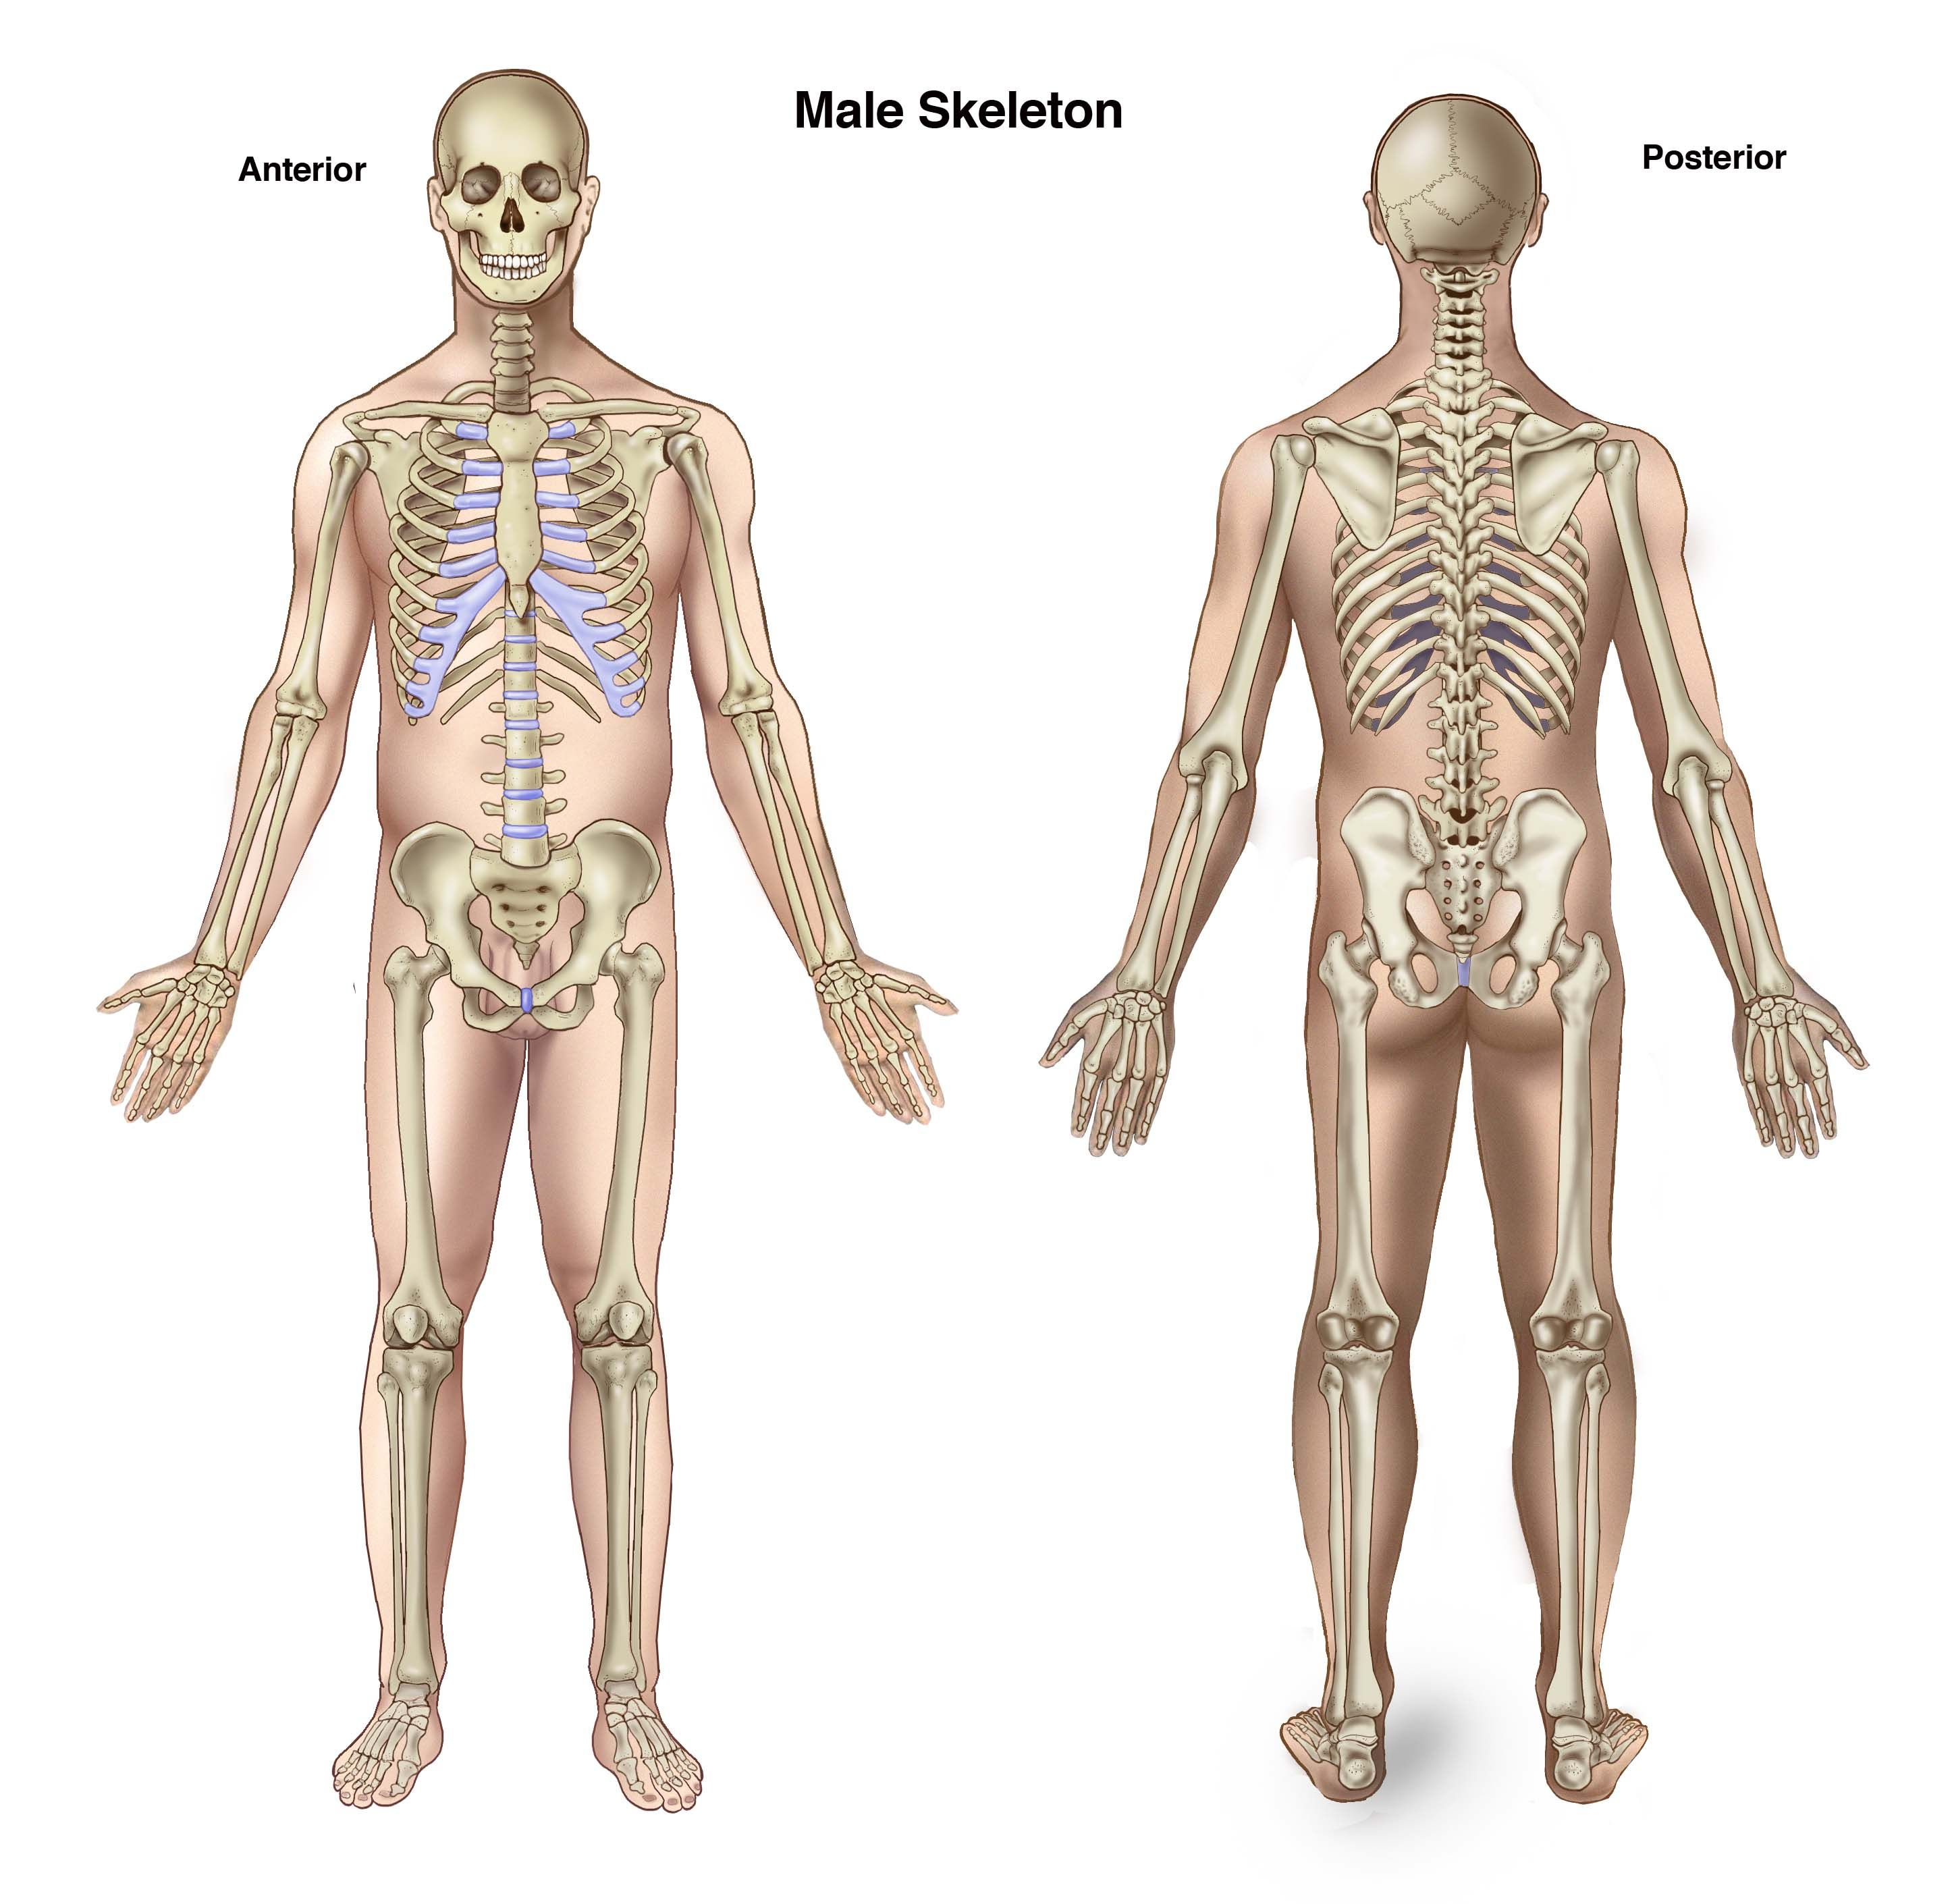 Male Skeleton Anterior and Posterior | Clay Doll Armature Base For ...